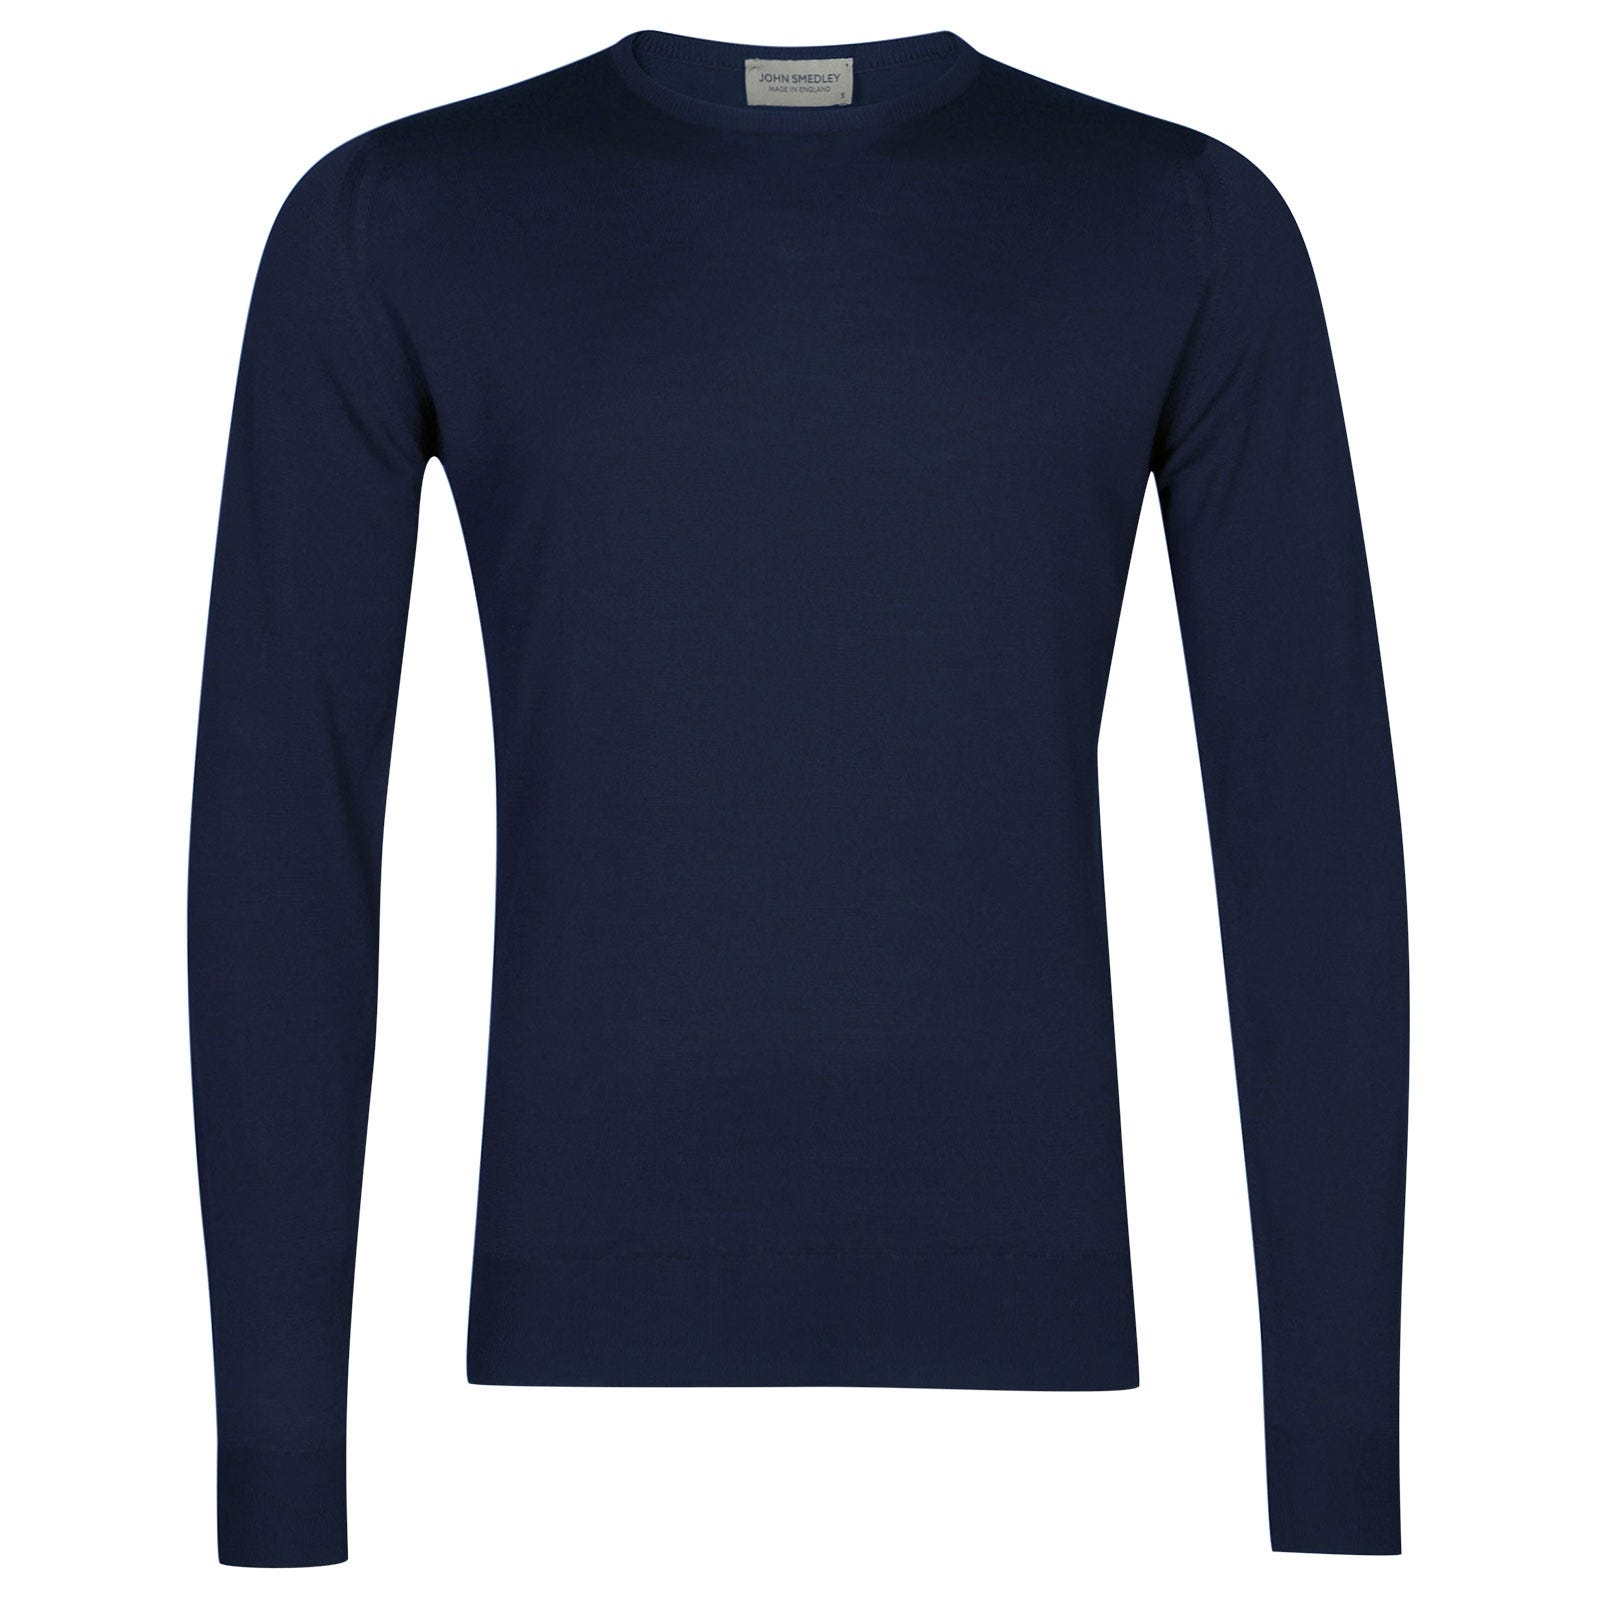 John Smedley Lundy Merino Wool Pullover in Magnetic Cobalt-M